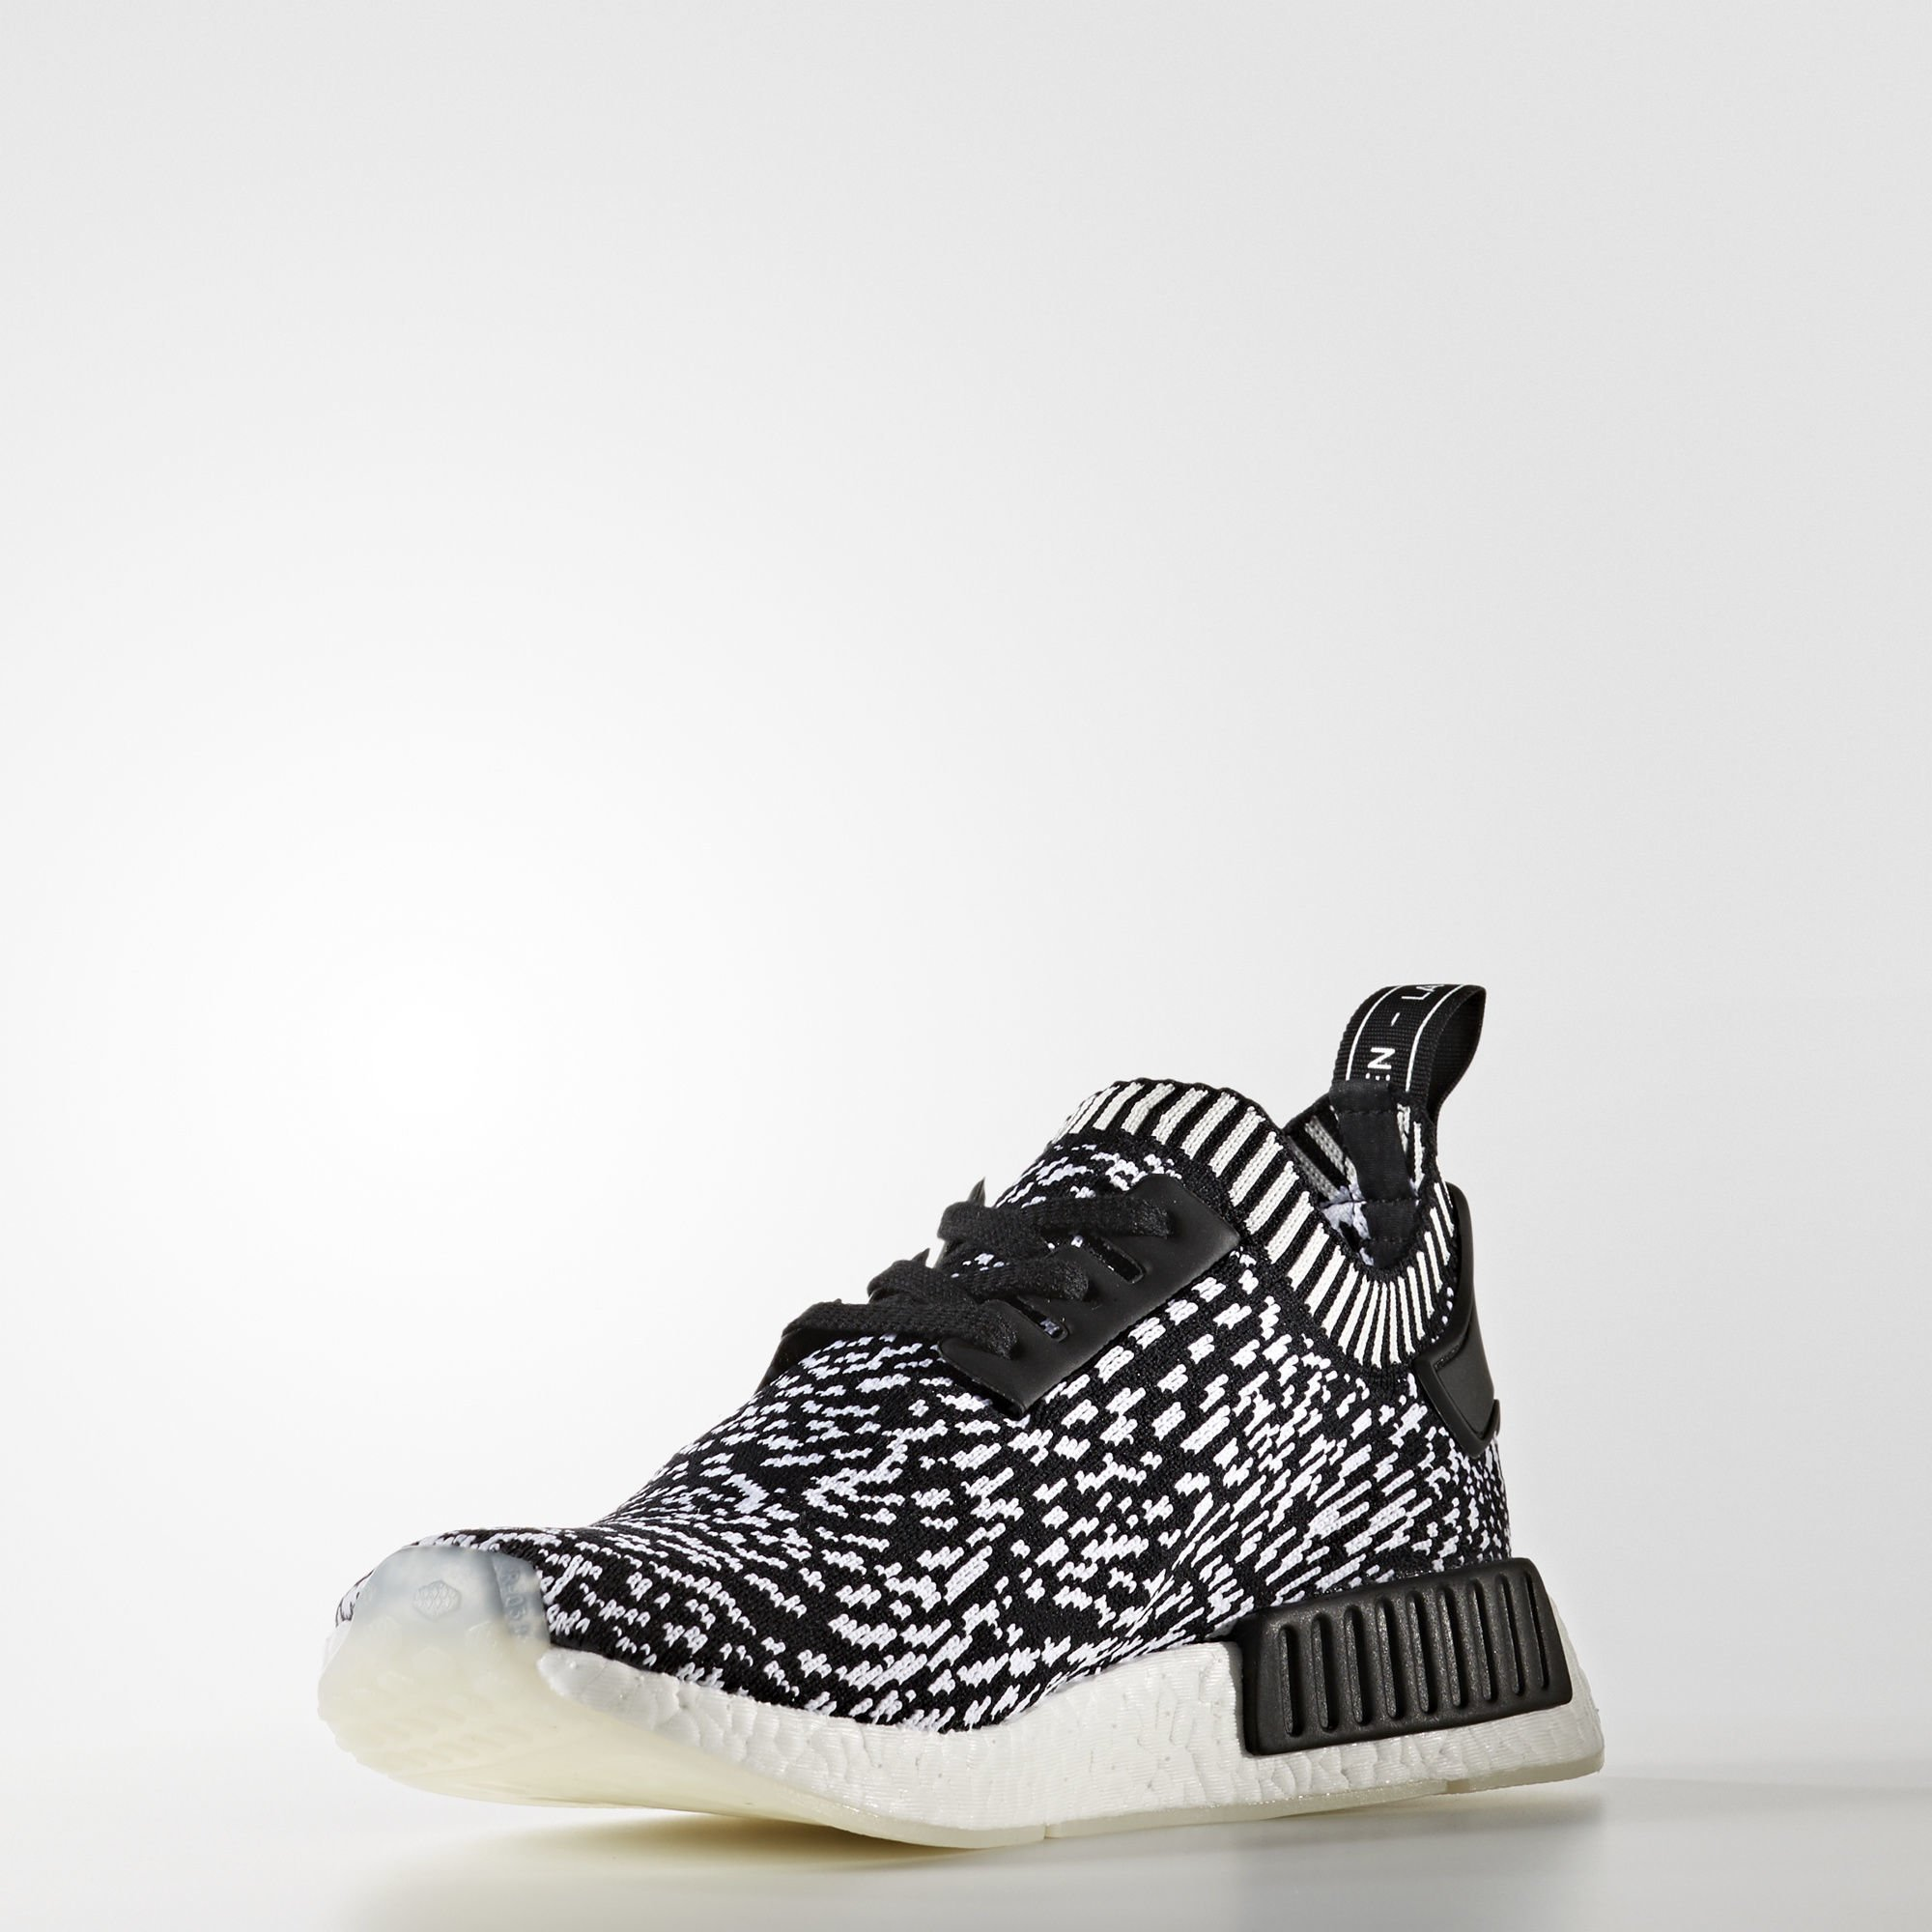 Adidas NMD R1 BY3013